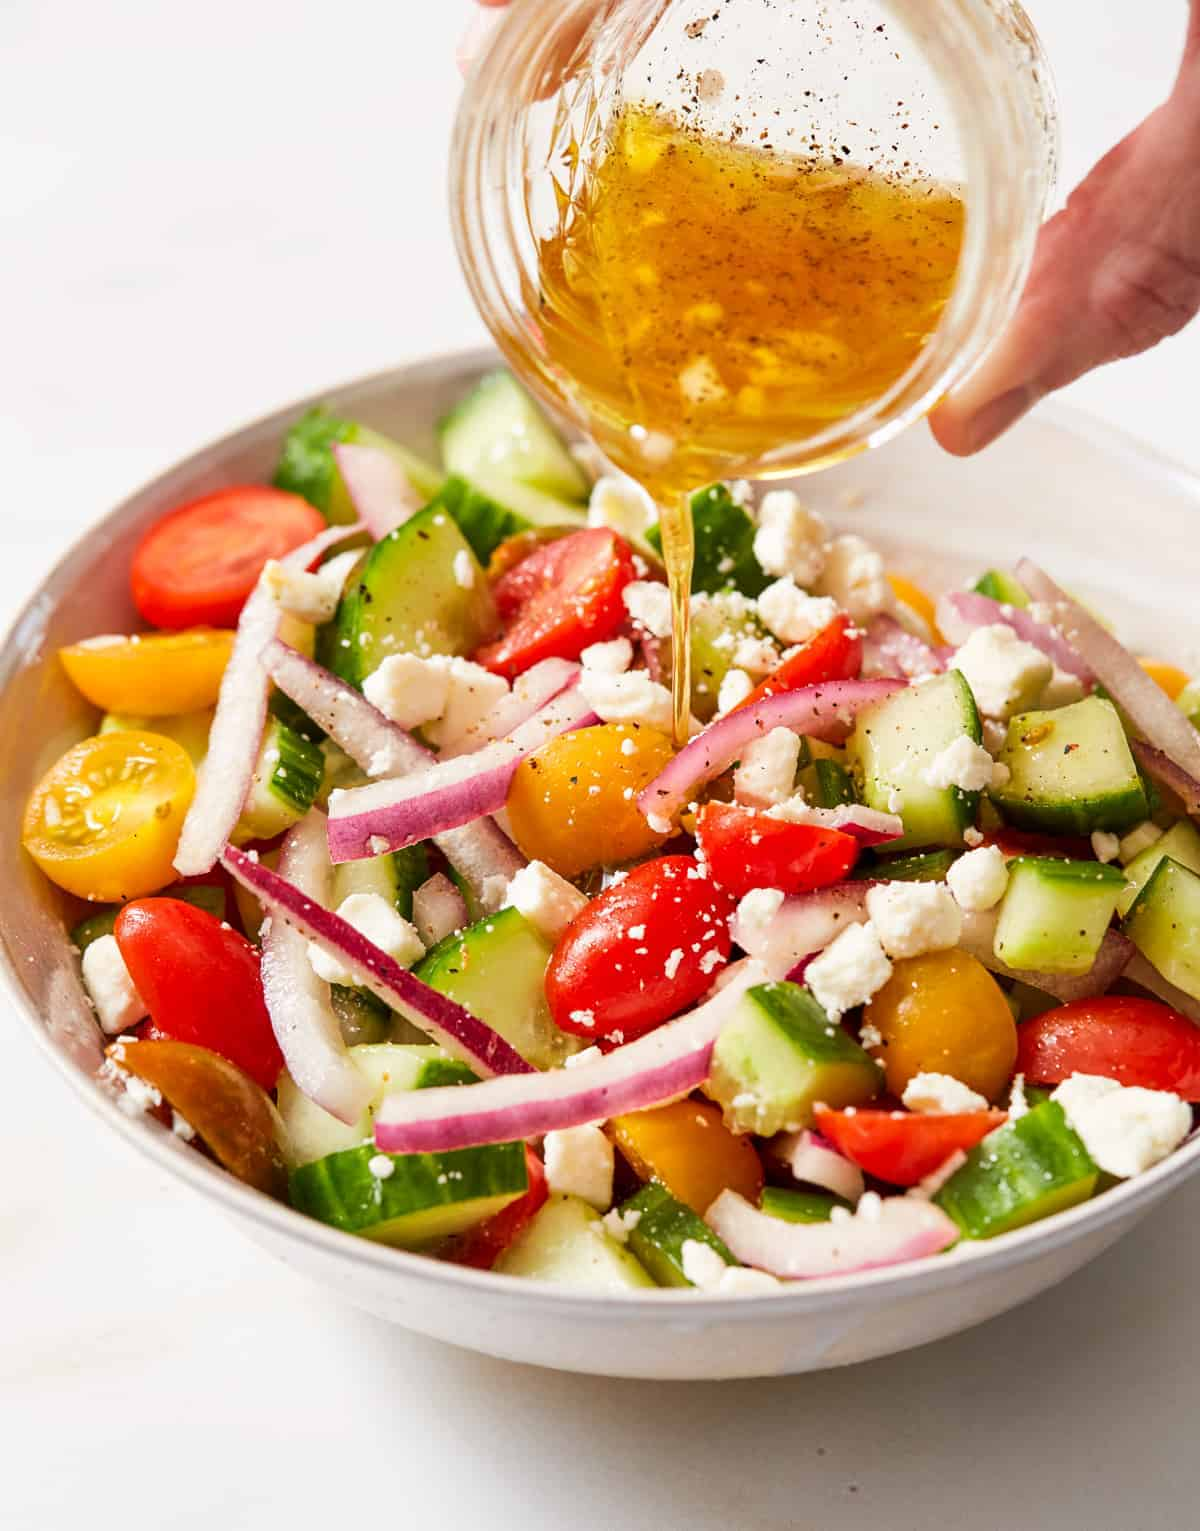 cucumber tomato onion salad drizzled with a light vinaigrette